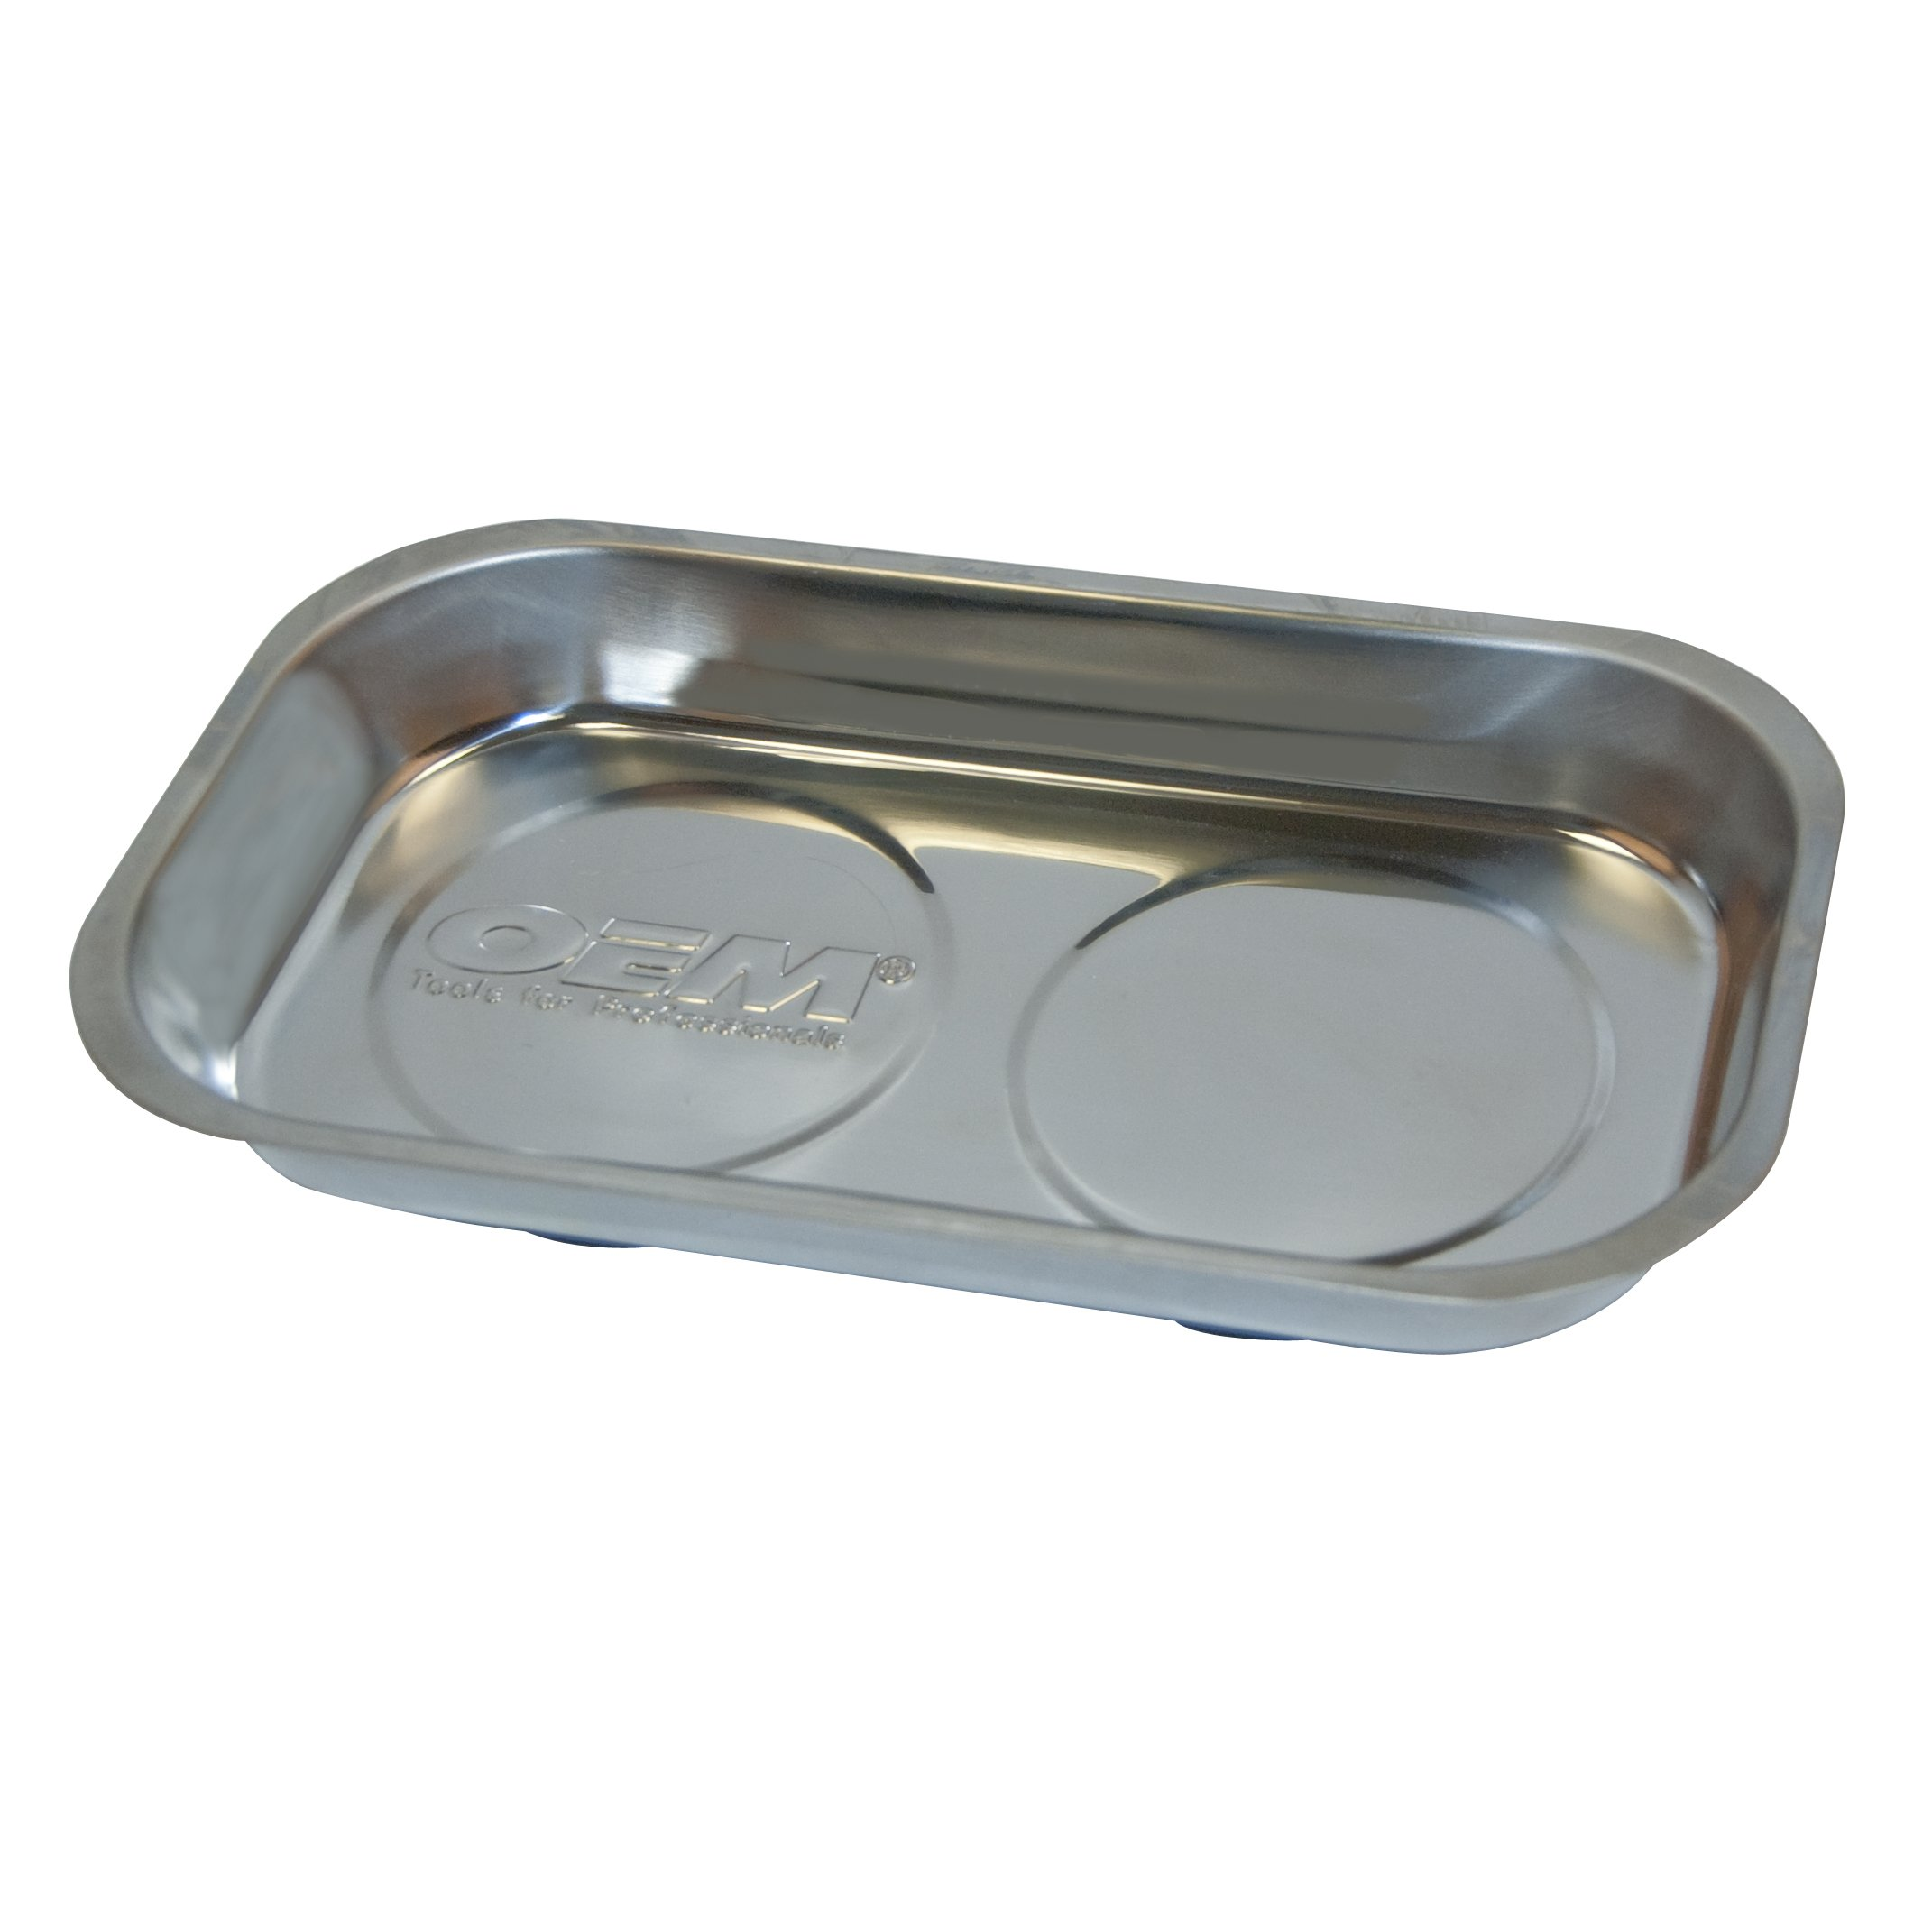 OEMTOOLS 25117C 5 Inch x 9 Inch Rectangular Magnetic Tray in Clamshell